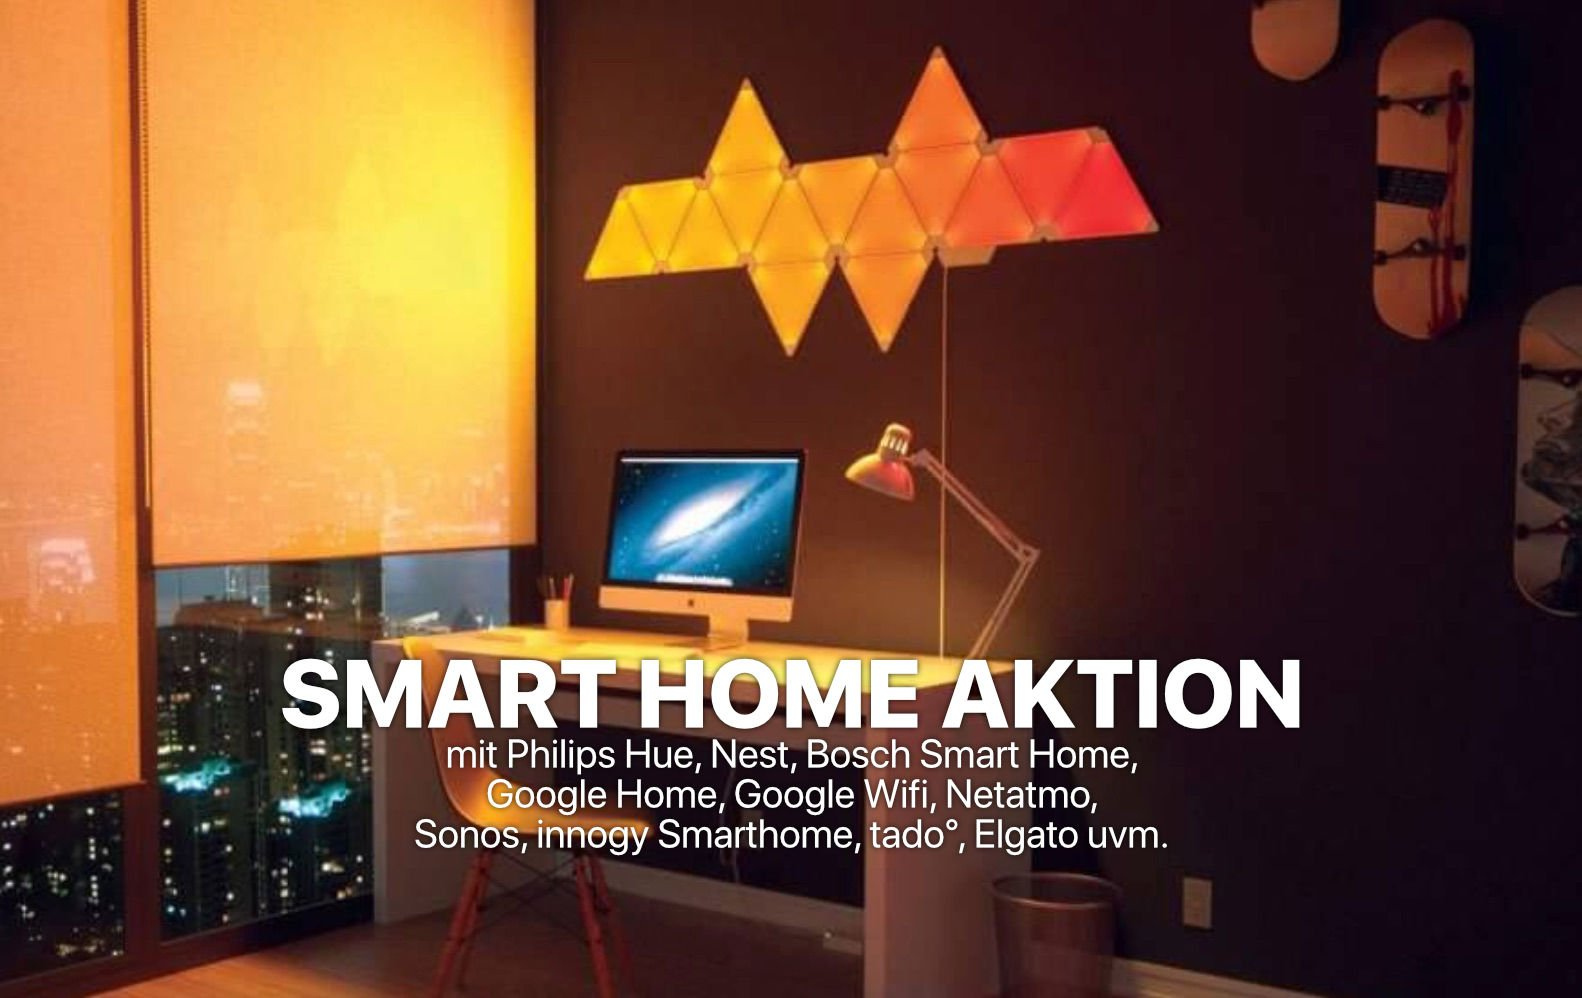 smart home g nstiger philips hue nest bosch google home netatmo sonos innogy tado. Black Bedroom Furniture Sets. Home Design Ideas